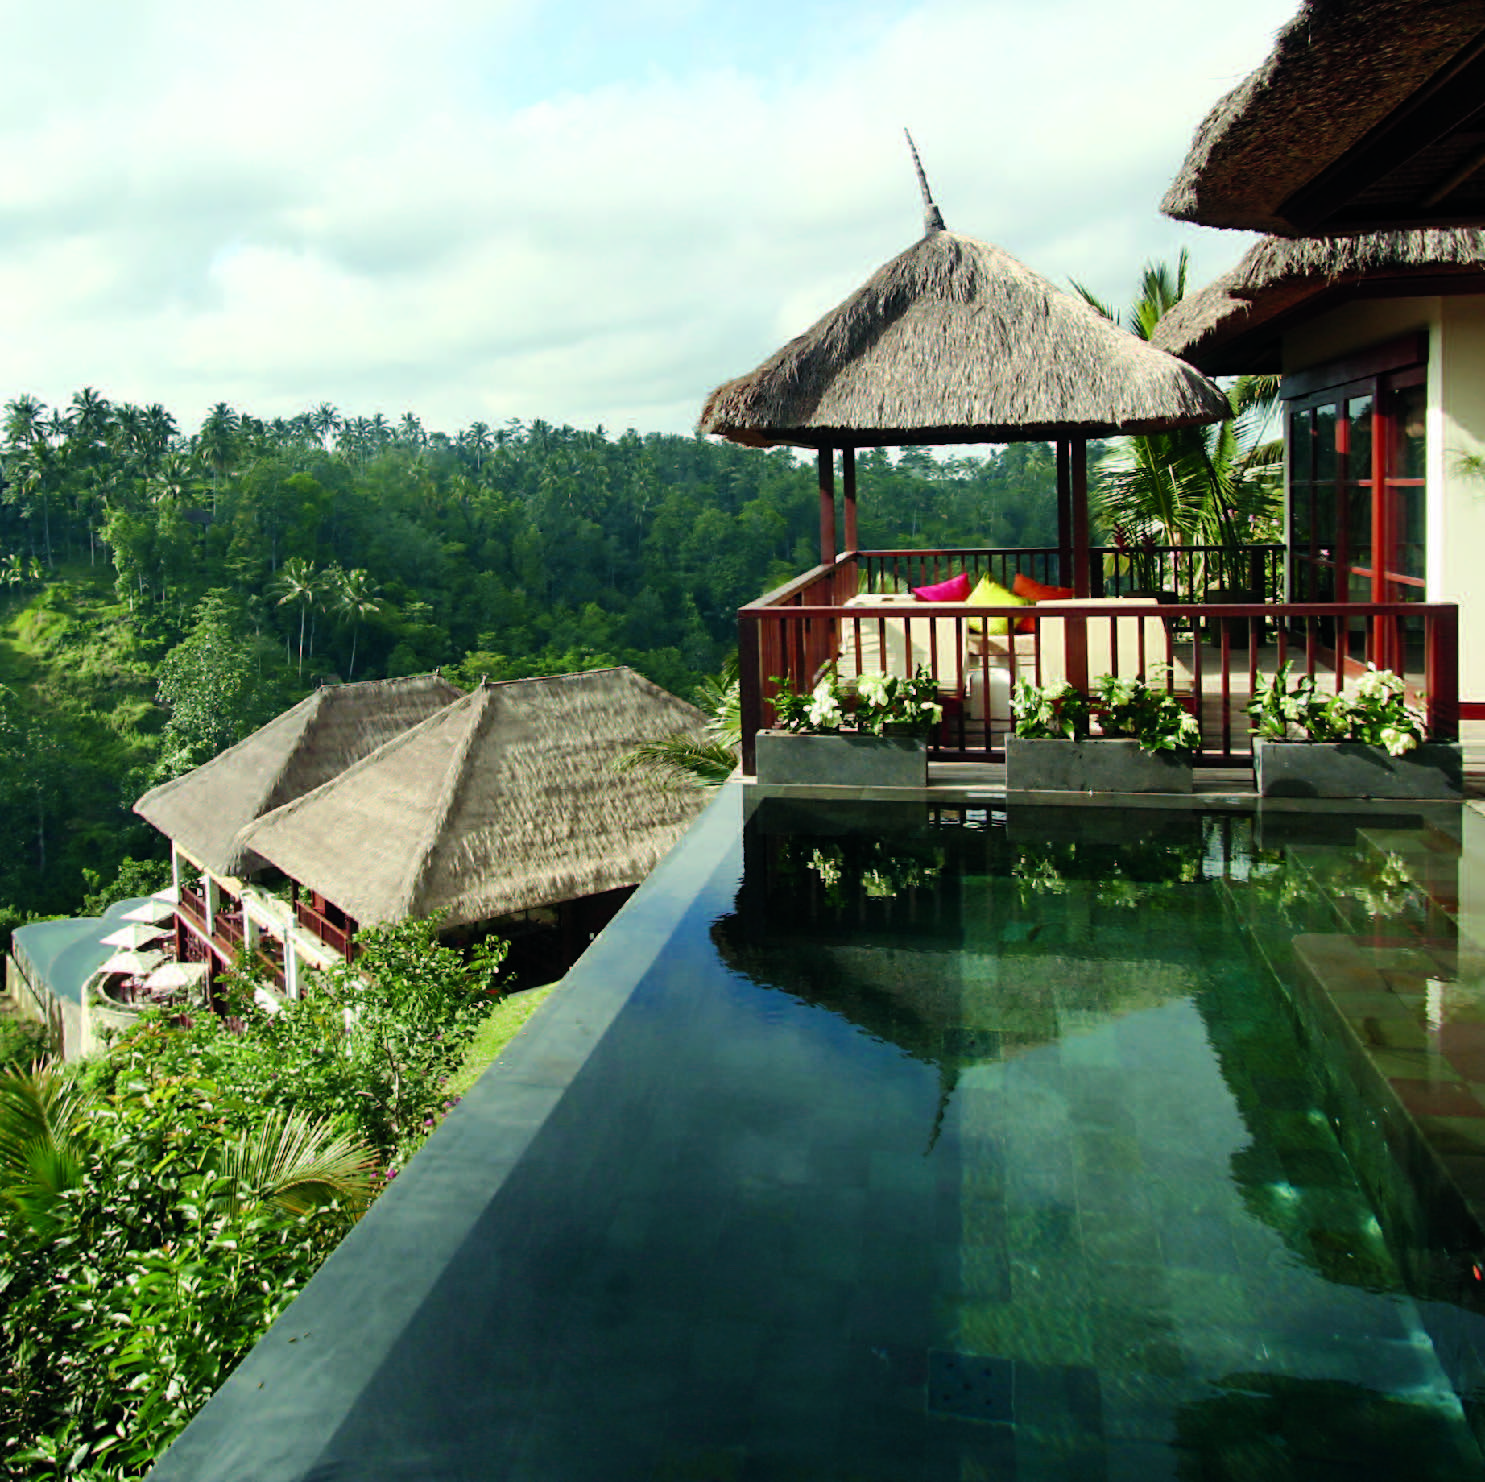 Reach for the sky vertical gardens around the world bld for Design boutique hotel ubud